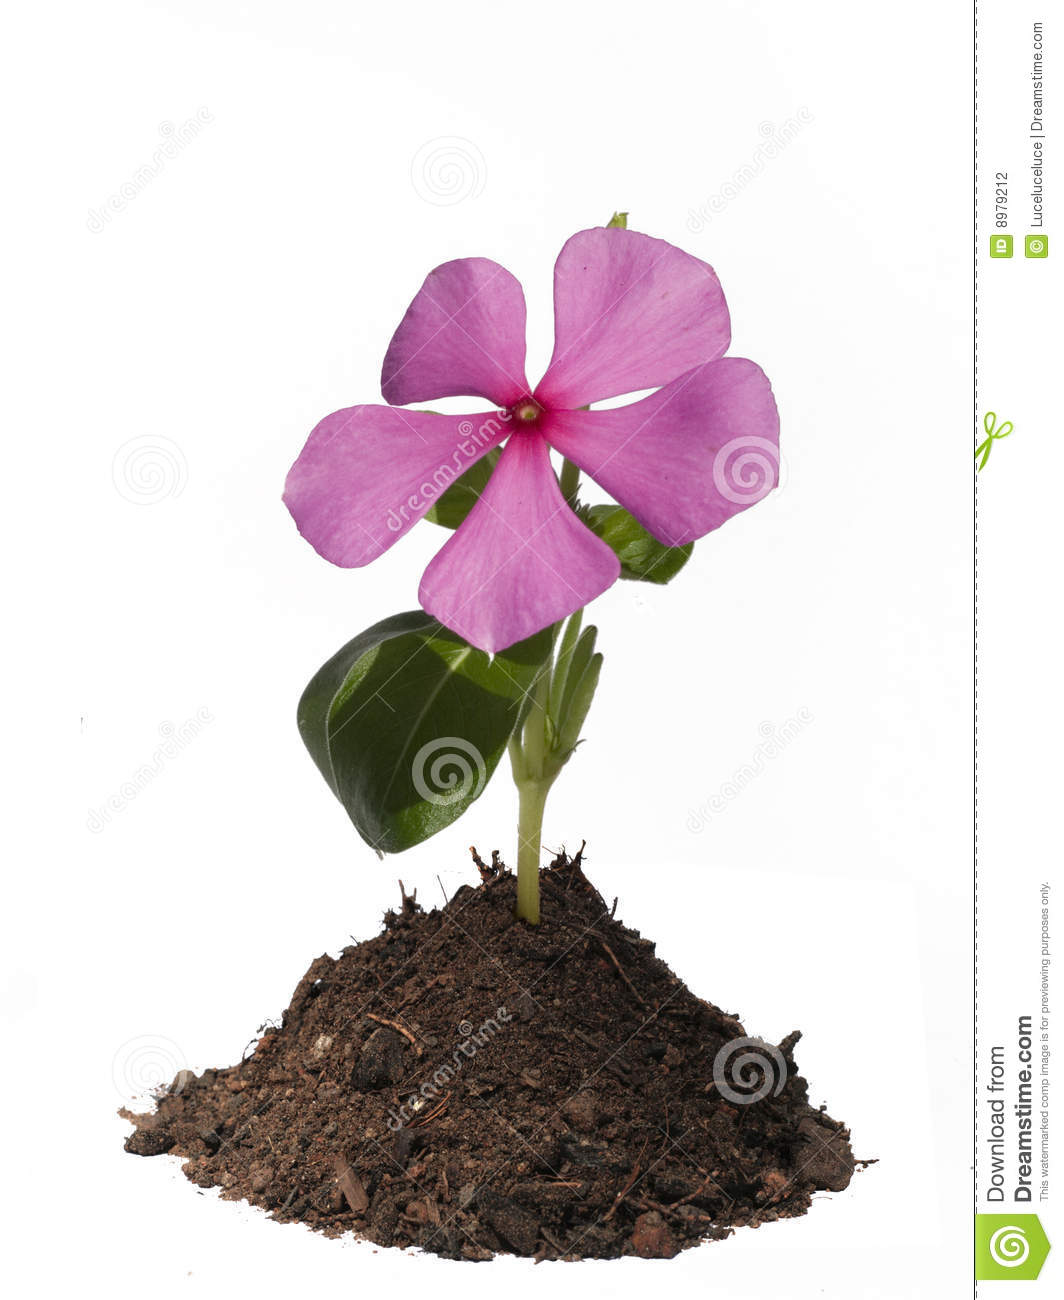 Pink Periwinkle Flower In A Mound Of Soil Stock Photo Image Of